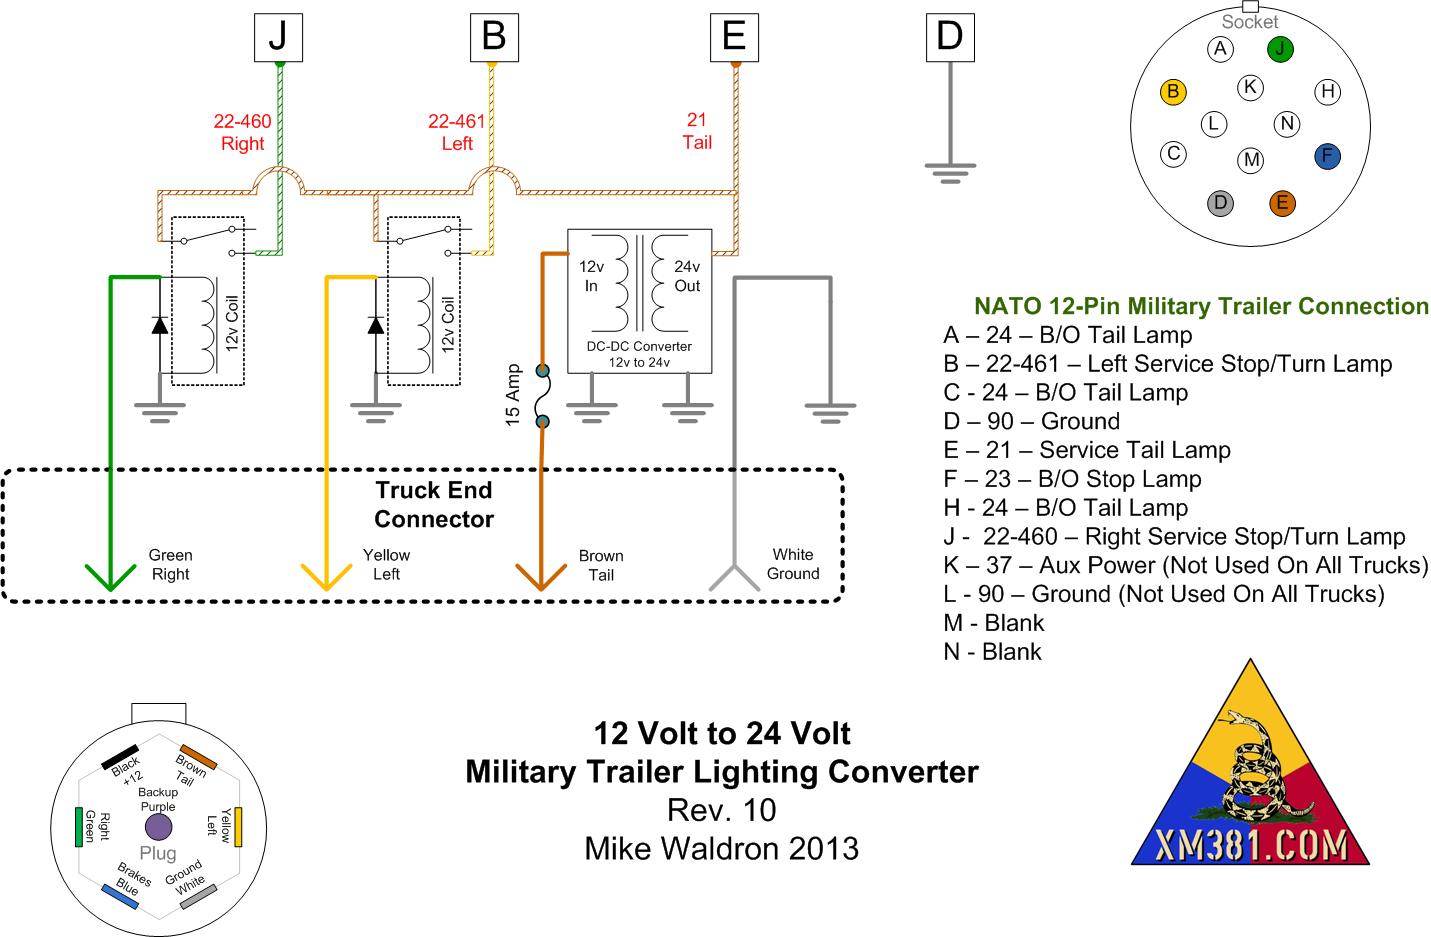 xm381 - 12 volt civllian truck to 24 volt military trailer ... 24 volt u s military 12 pin trailer plug wiring diagram